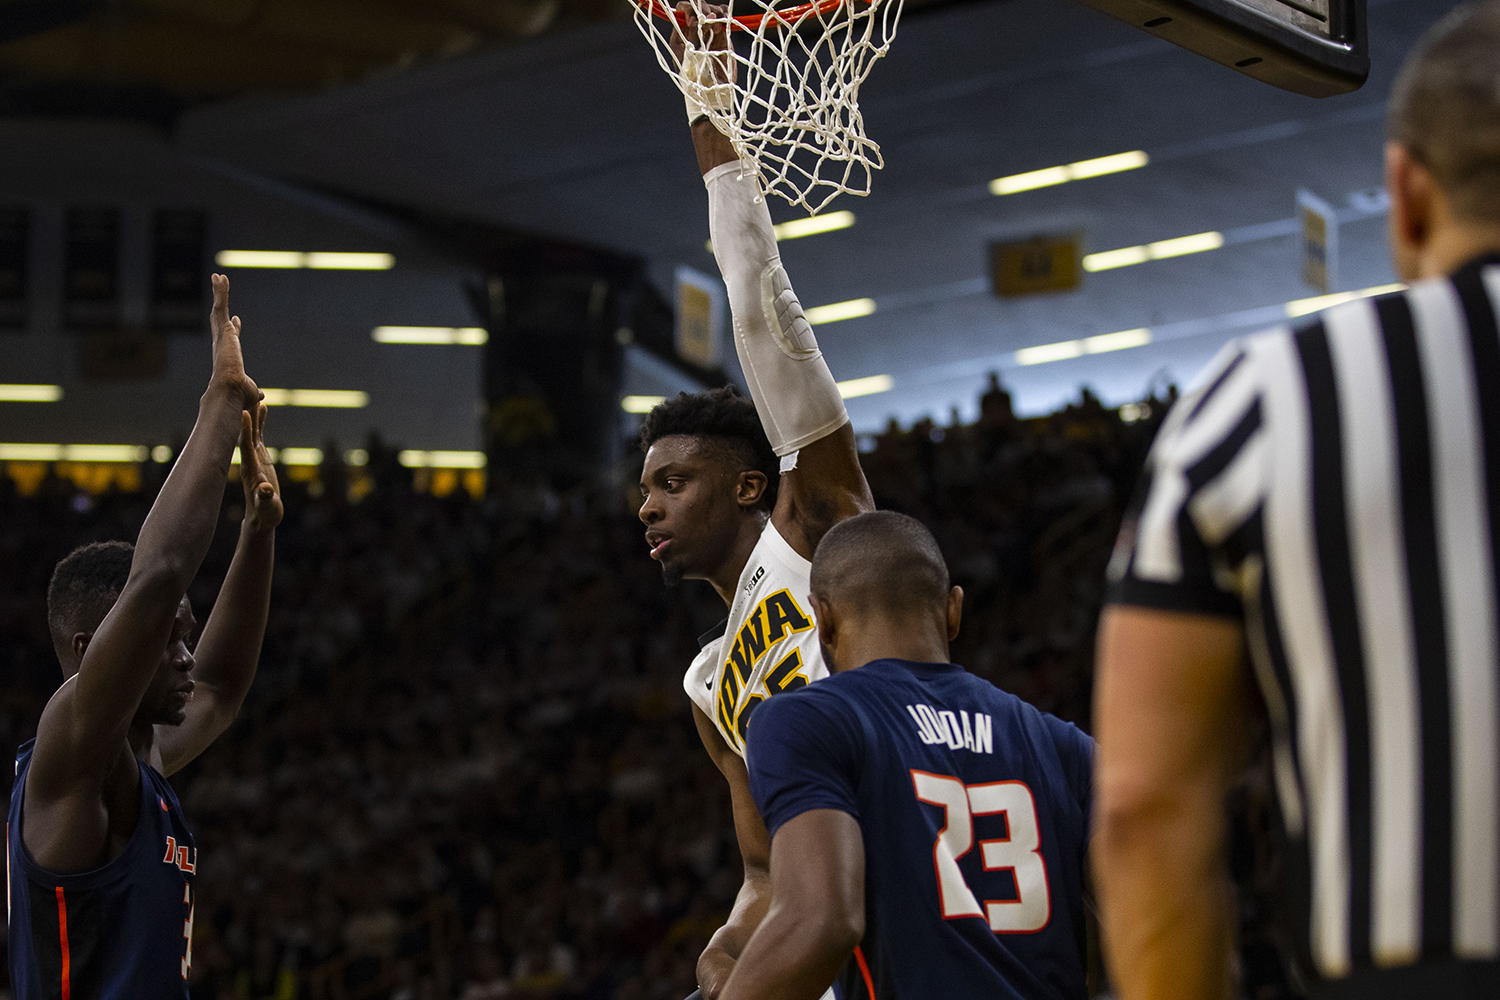 Iowa forward Tyler Cook dunks during the Iowa/Illinois men's basketball game at Carver-Hawkeye Arena on Sunday, January 20, 2019.